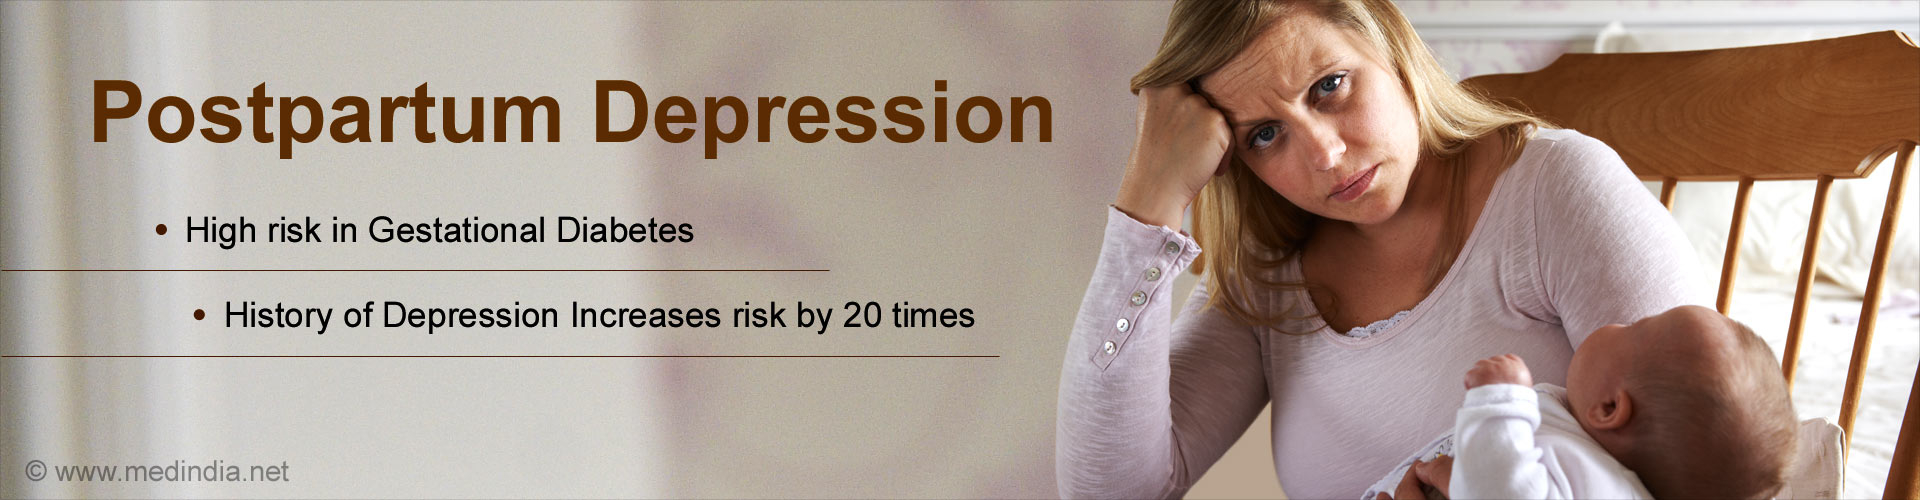 Postpartum Depression - High risk in gestational diabetes - Hisory of depession increase risk by 20 times